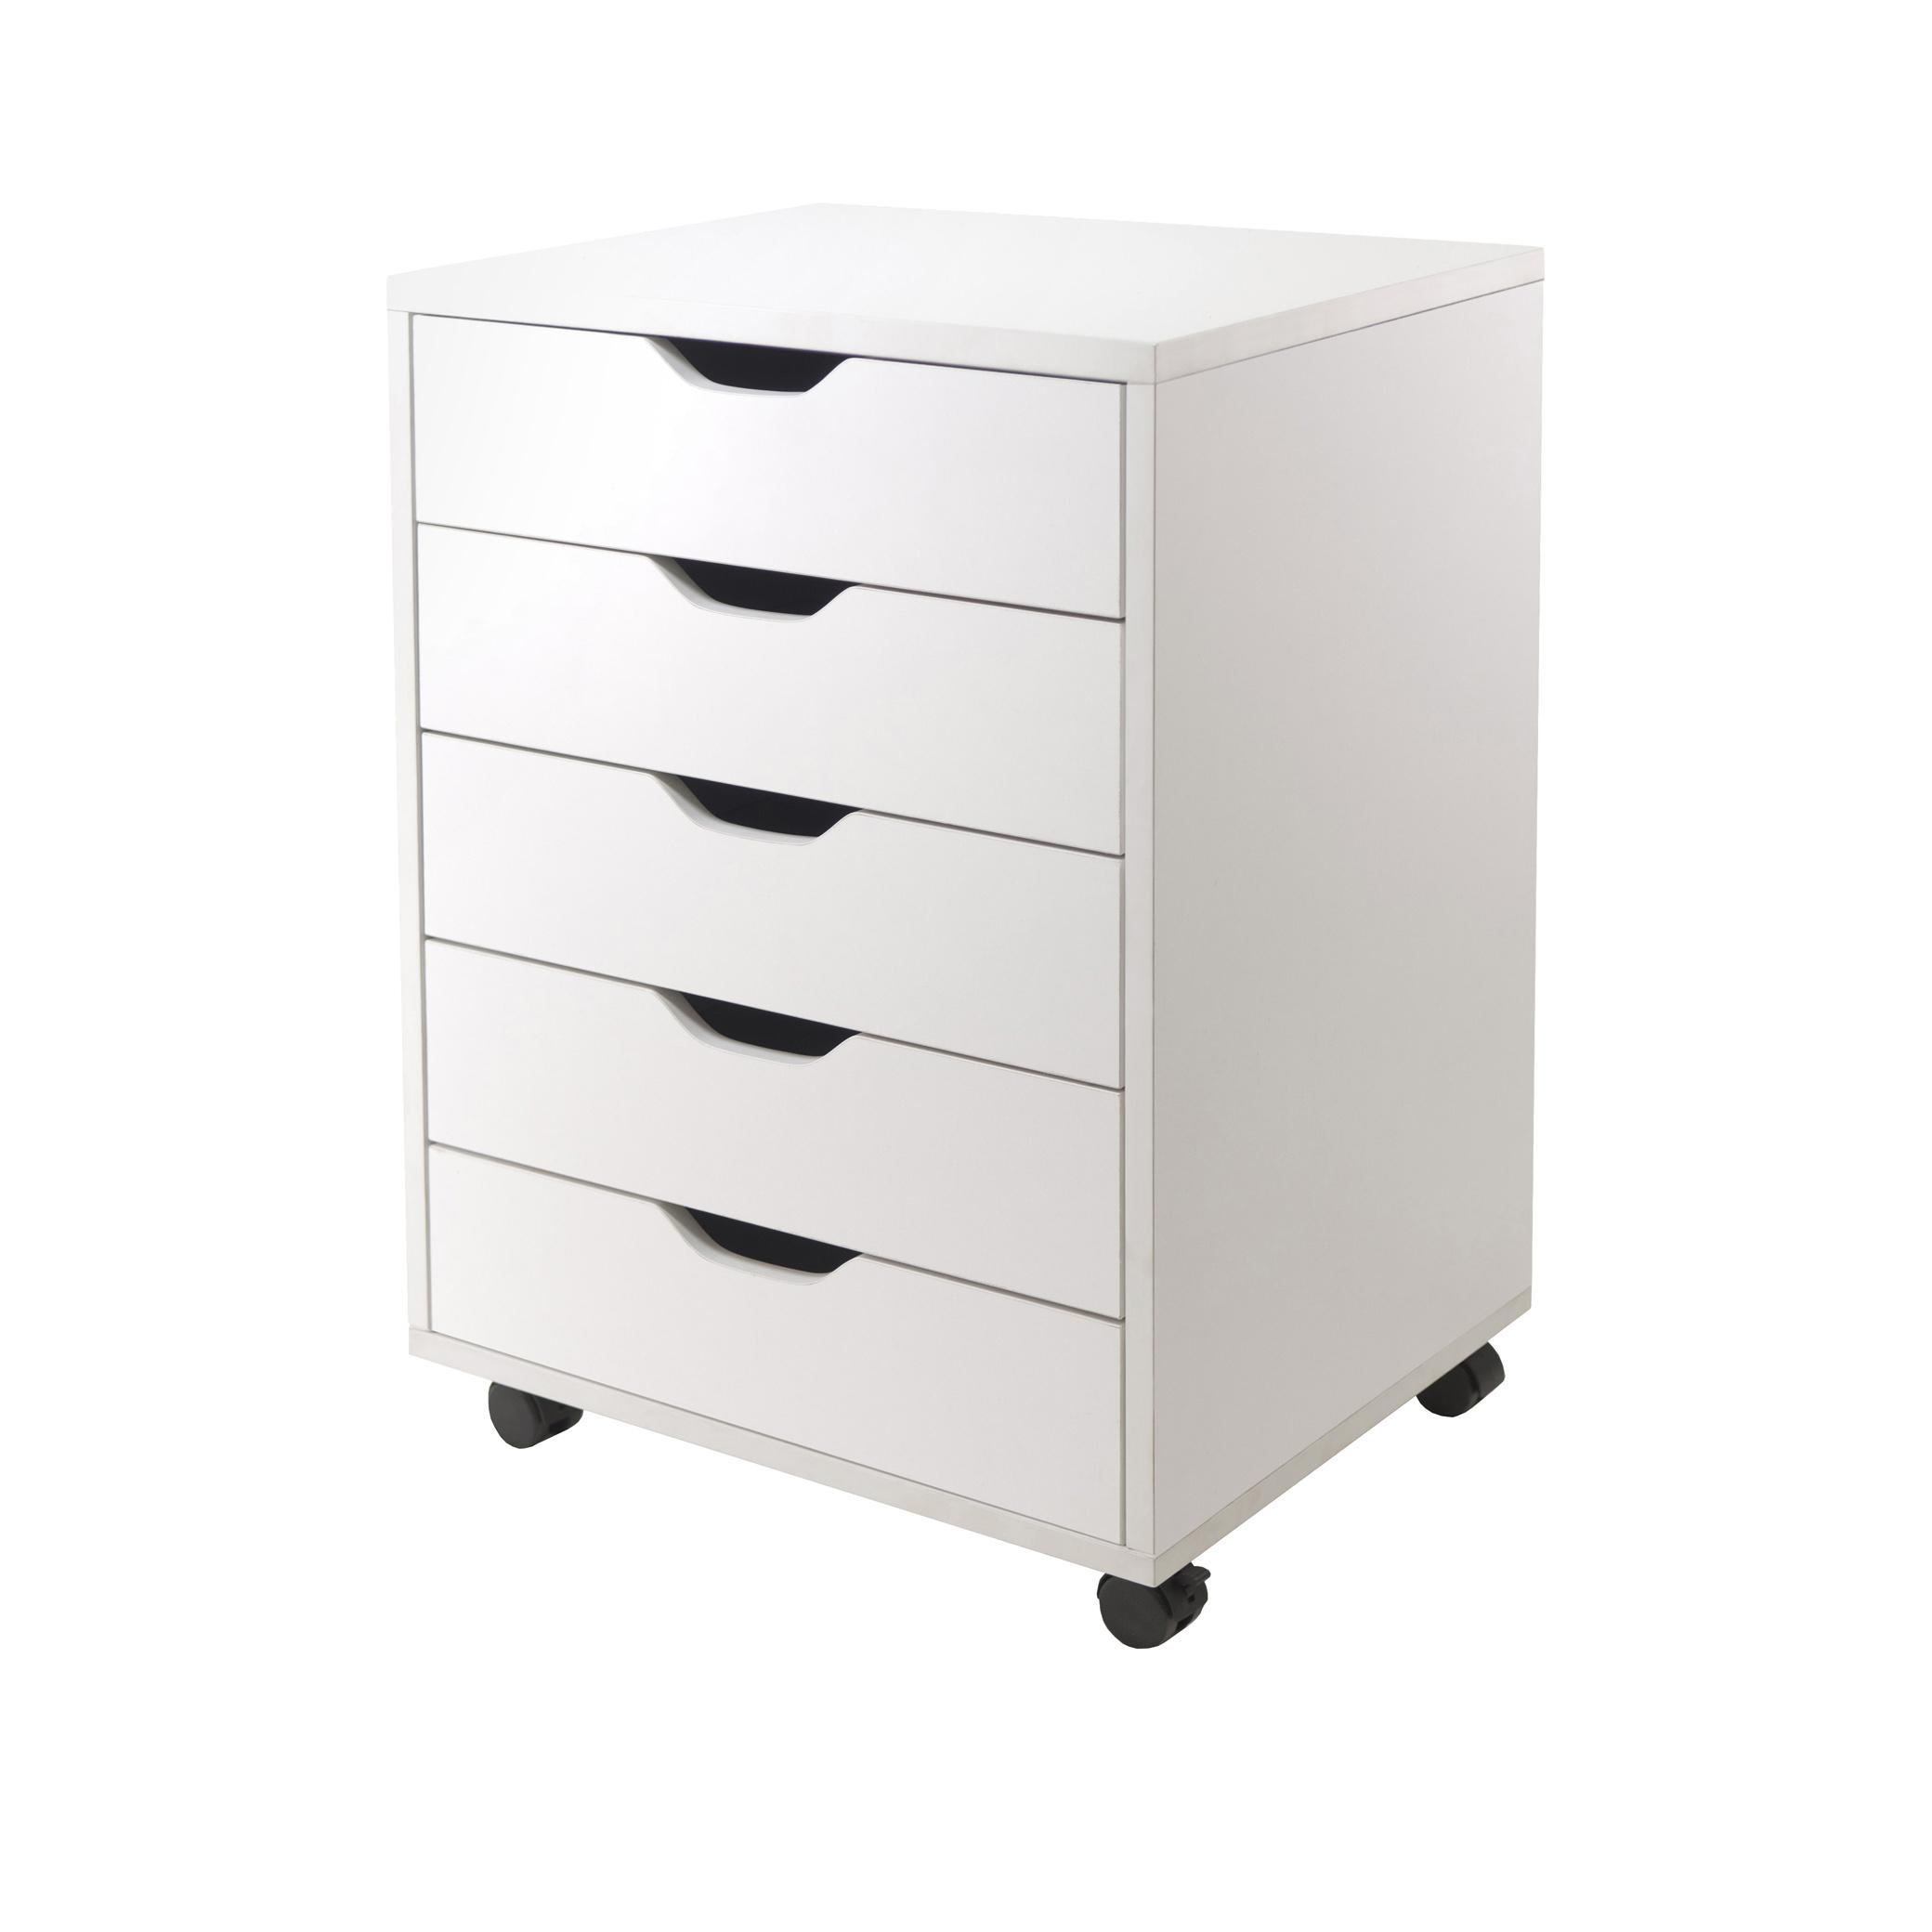 Closet Organizer Ideas Ikea Amazon Com Winsome Halifax Cabinet For Closet Office 5